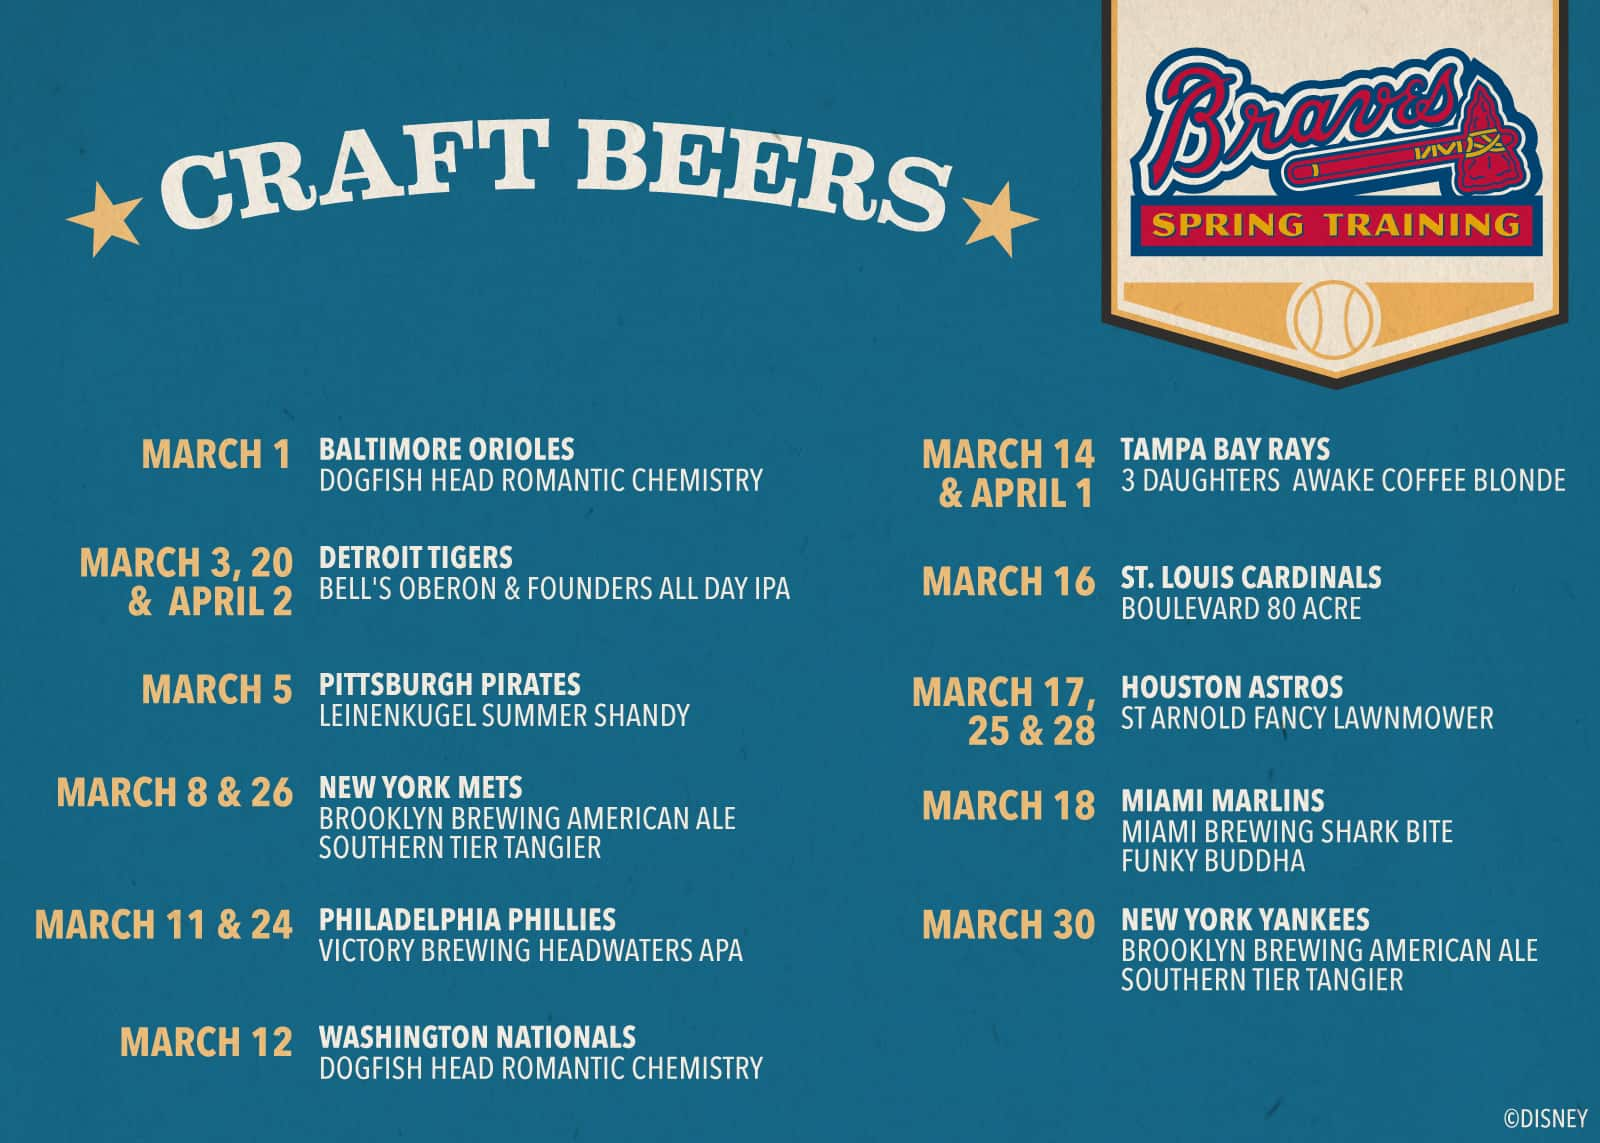 Craft Brew Menu at ESPN Wide World of Sports Complex